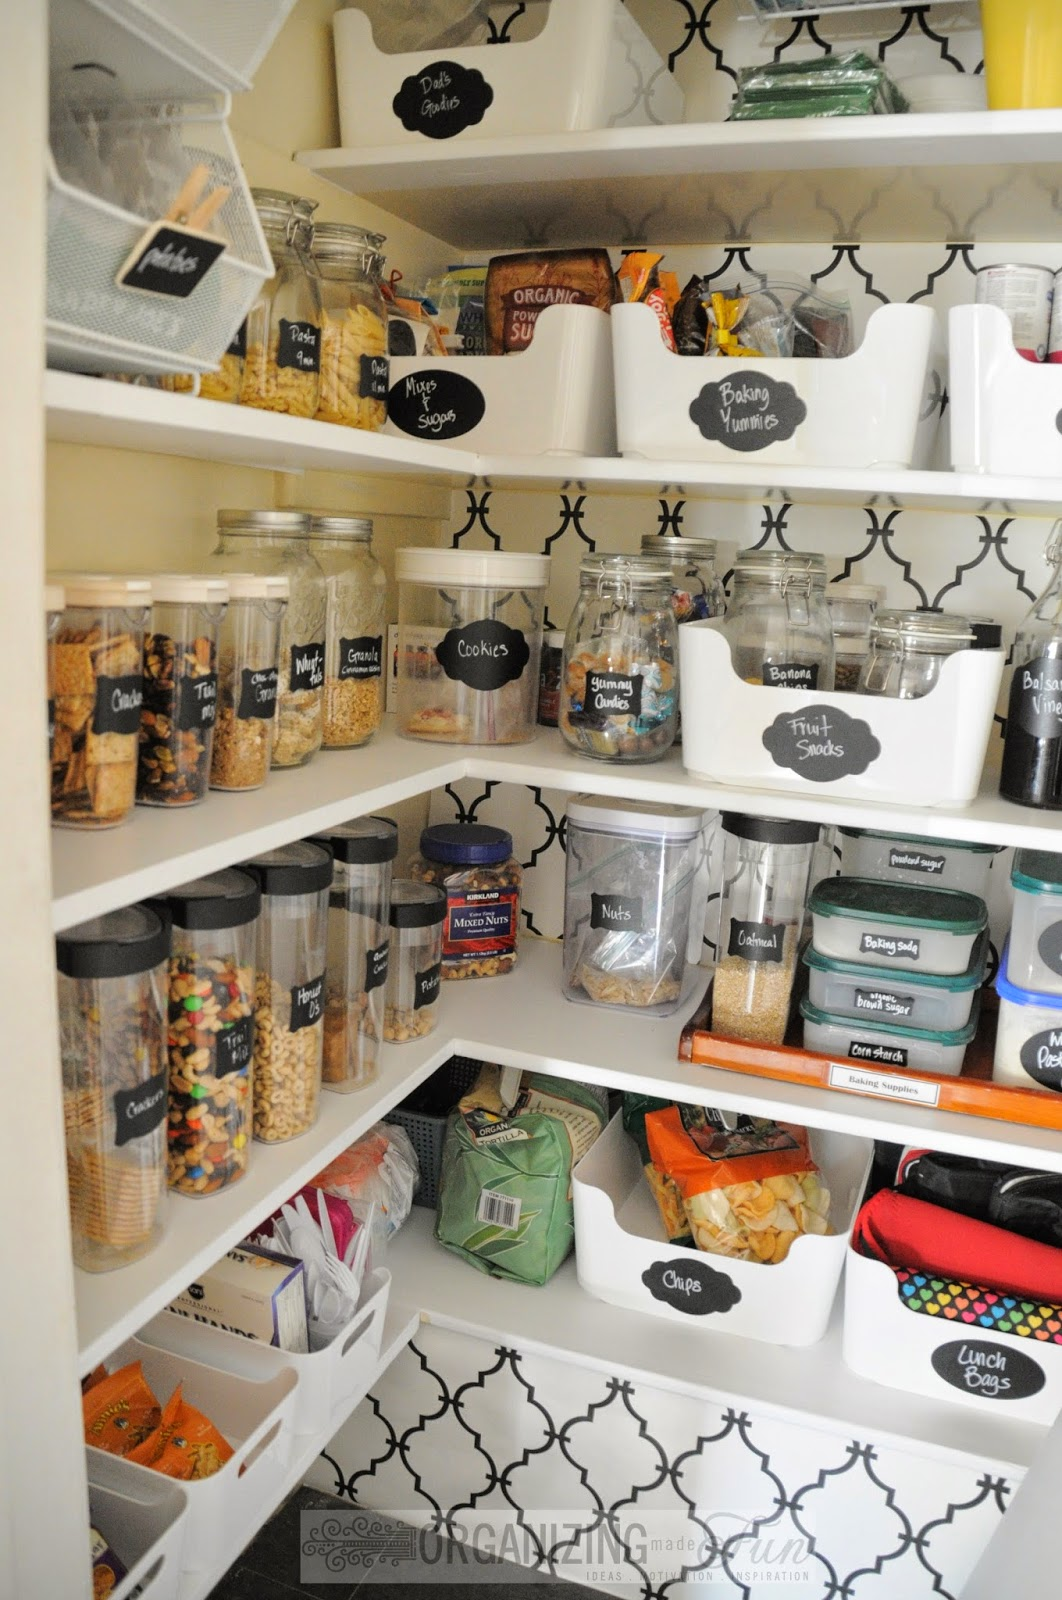 Organizing Kitchen Pantry Top Organizing Blogger Home Tours Kitchen Pantry Organizing